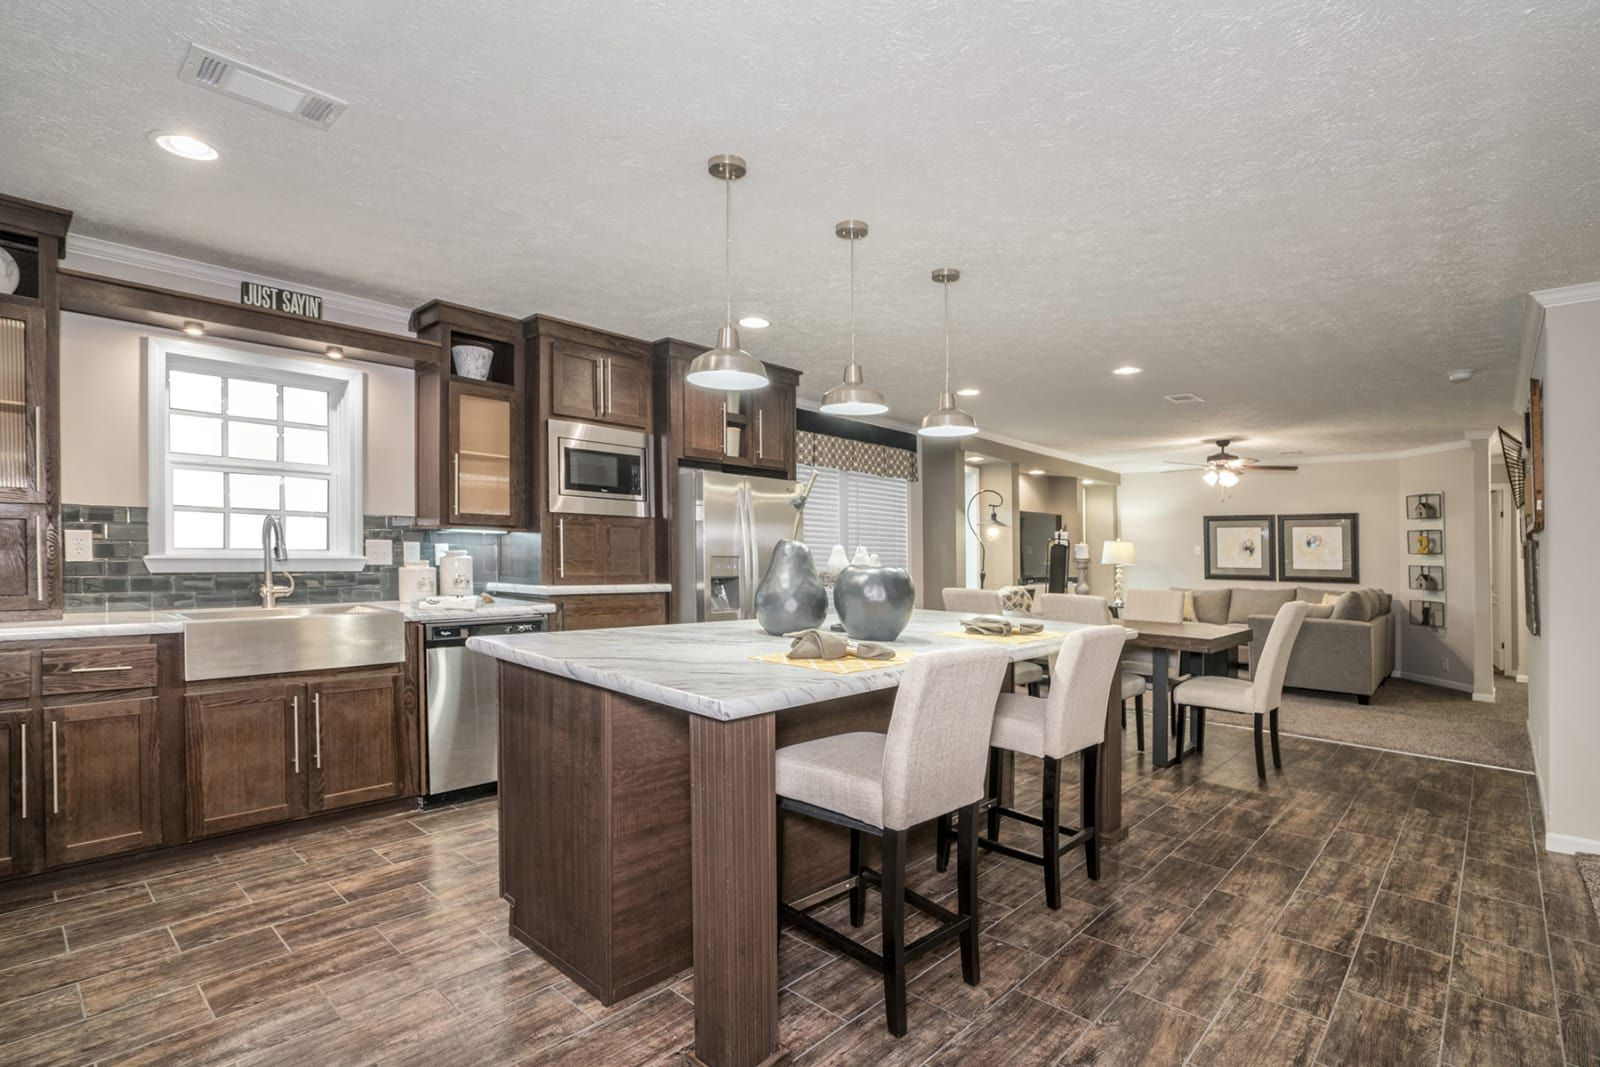 kitchen with dark cabinets wood floors stainless steel appliances rh pinterest com Fleetwood Single Wide Mobile Homes Kitchen Islands Amazon